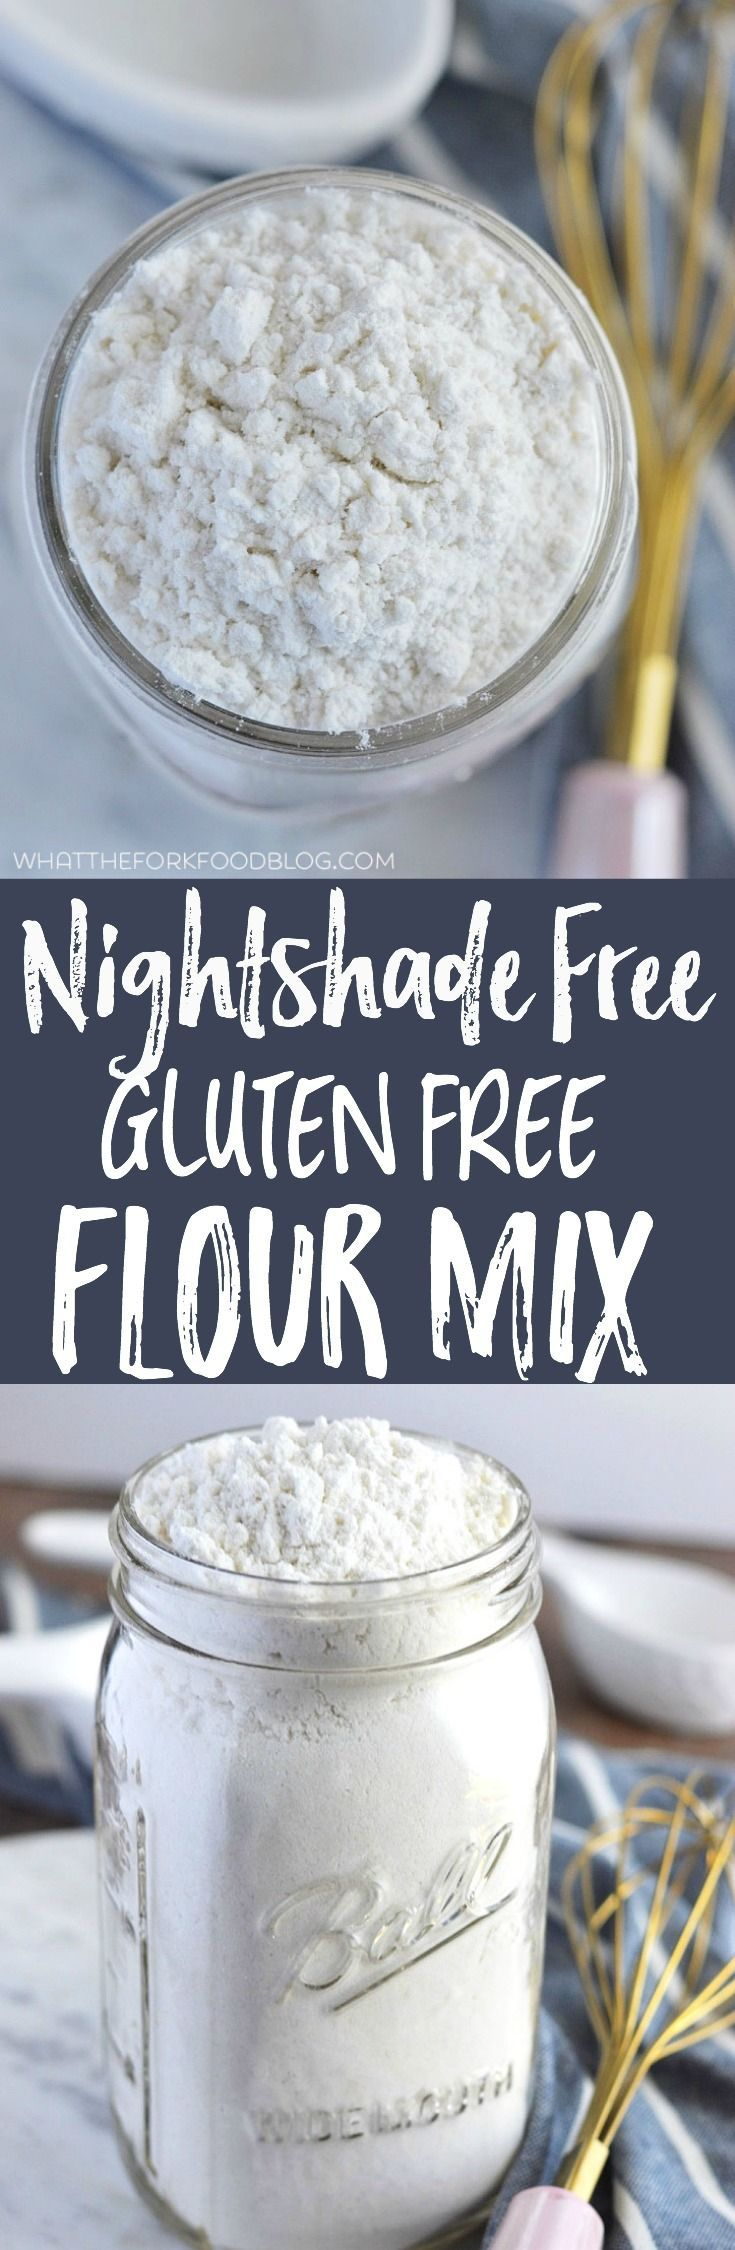 Nightshade-Free Gluten Free Flour Mix (no potato starch) from What The Fork Food Blog   www.whattheforkfoodblog.com